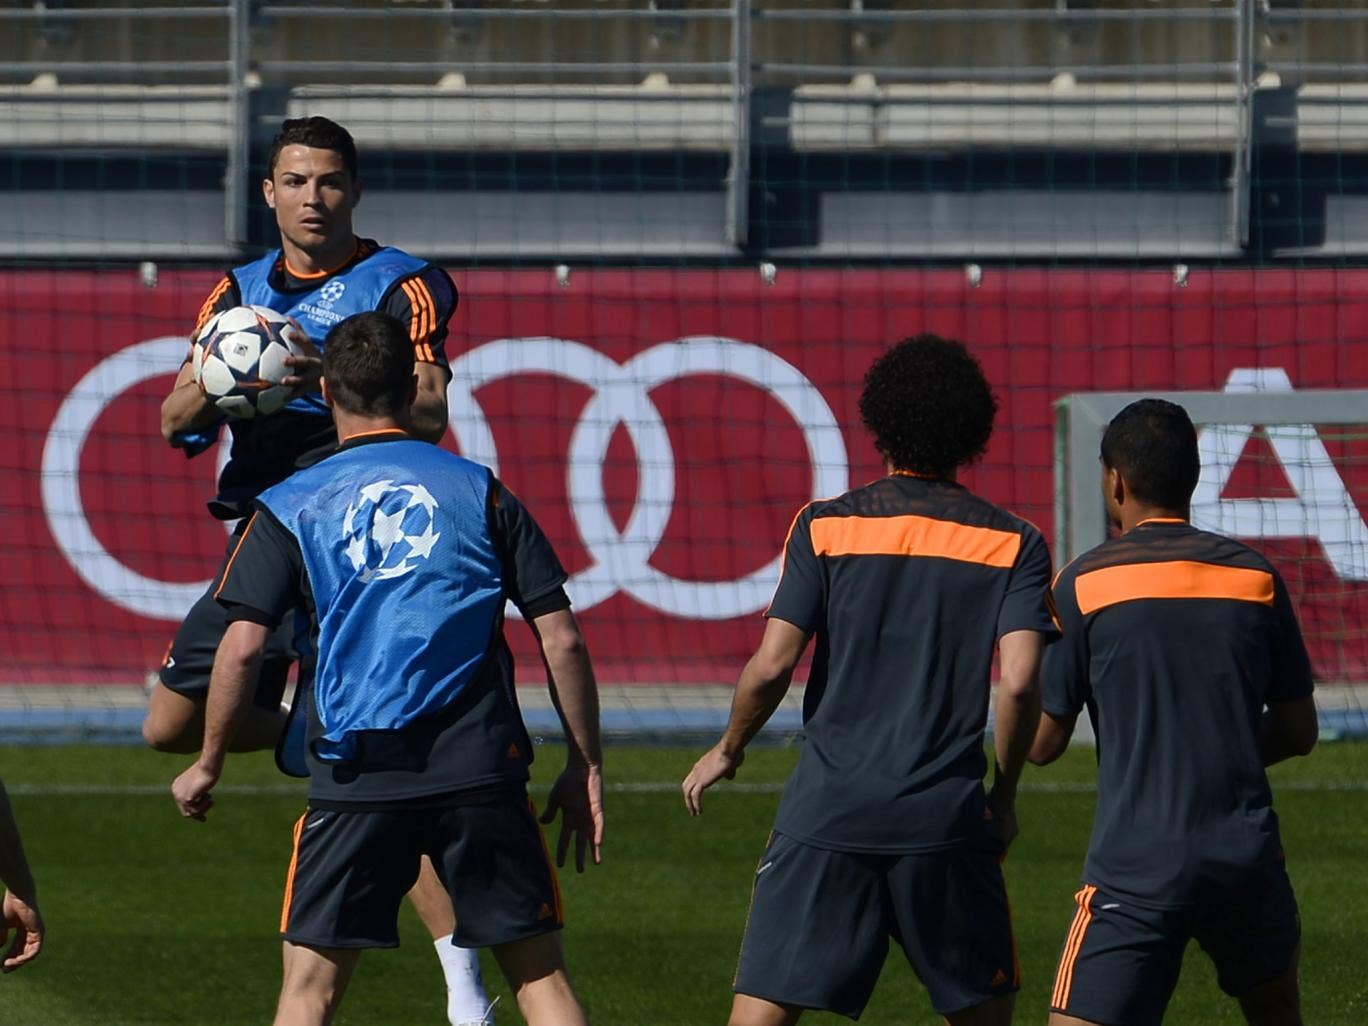 Cristiano Ronaldo pictured training for Real Madrid prior to his team's game against Schalke